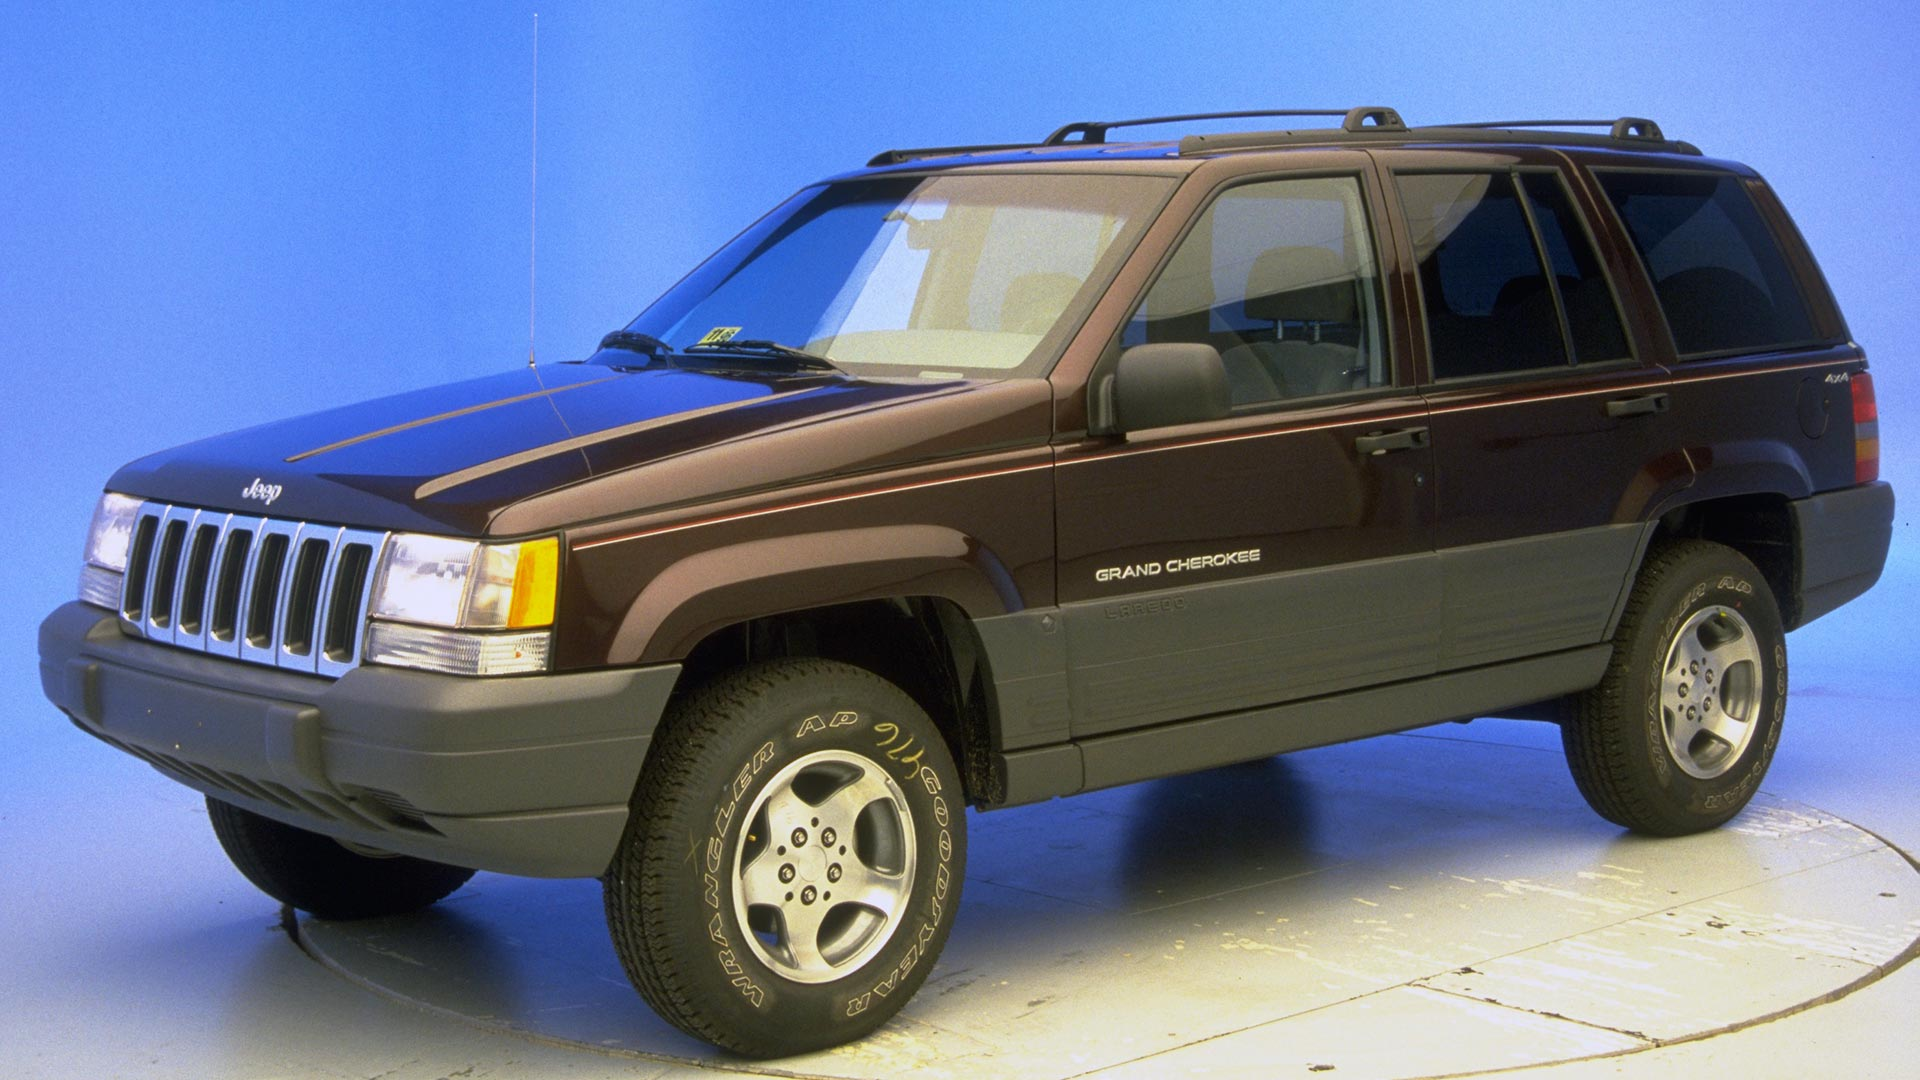 1996 Jeep Grand Cherokee 4-door SUV